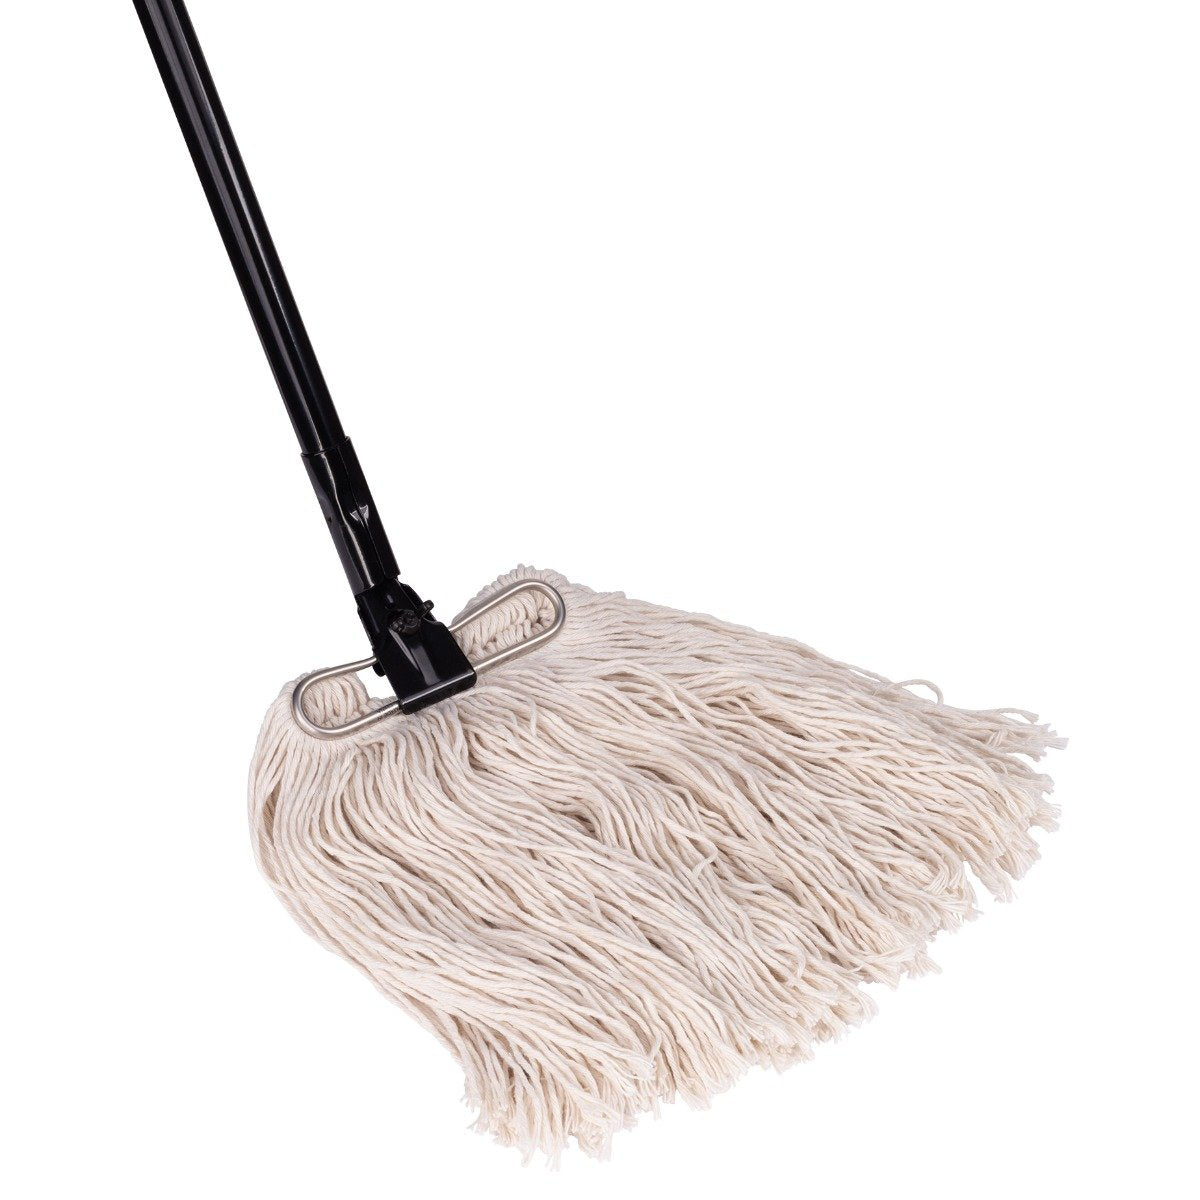 Wet Mop Complete Absorbent Quality Cotton Yarn Floor Cleaner- W/806 Handle-Mops-Fuller Brush Company